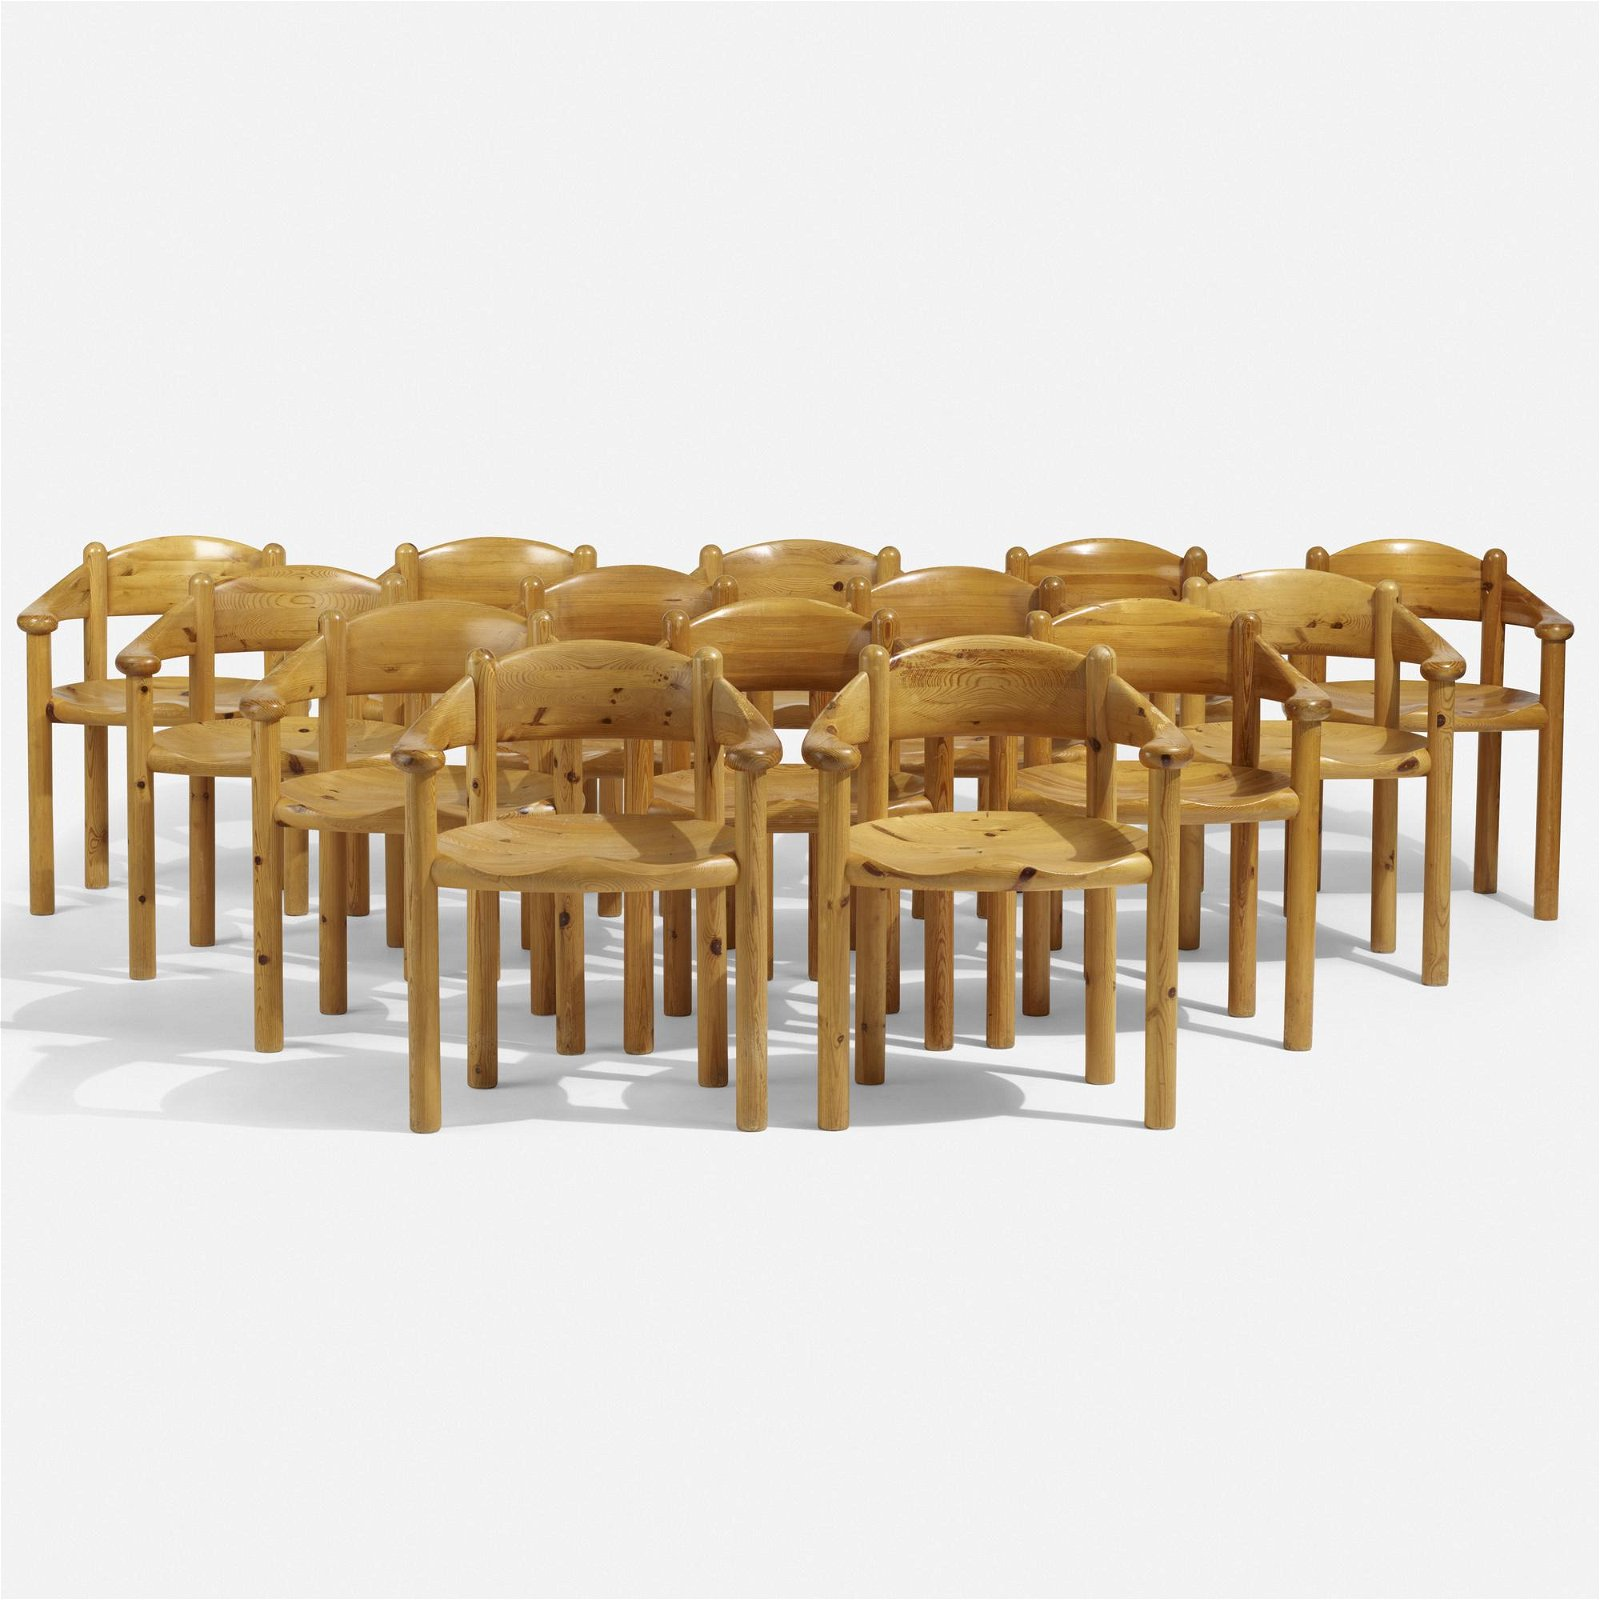 Rainer Daumiller, dining chairs, set of fourteen